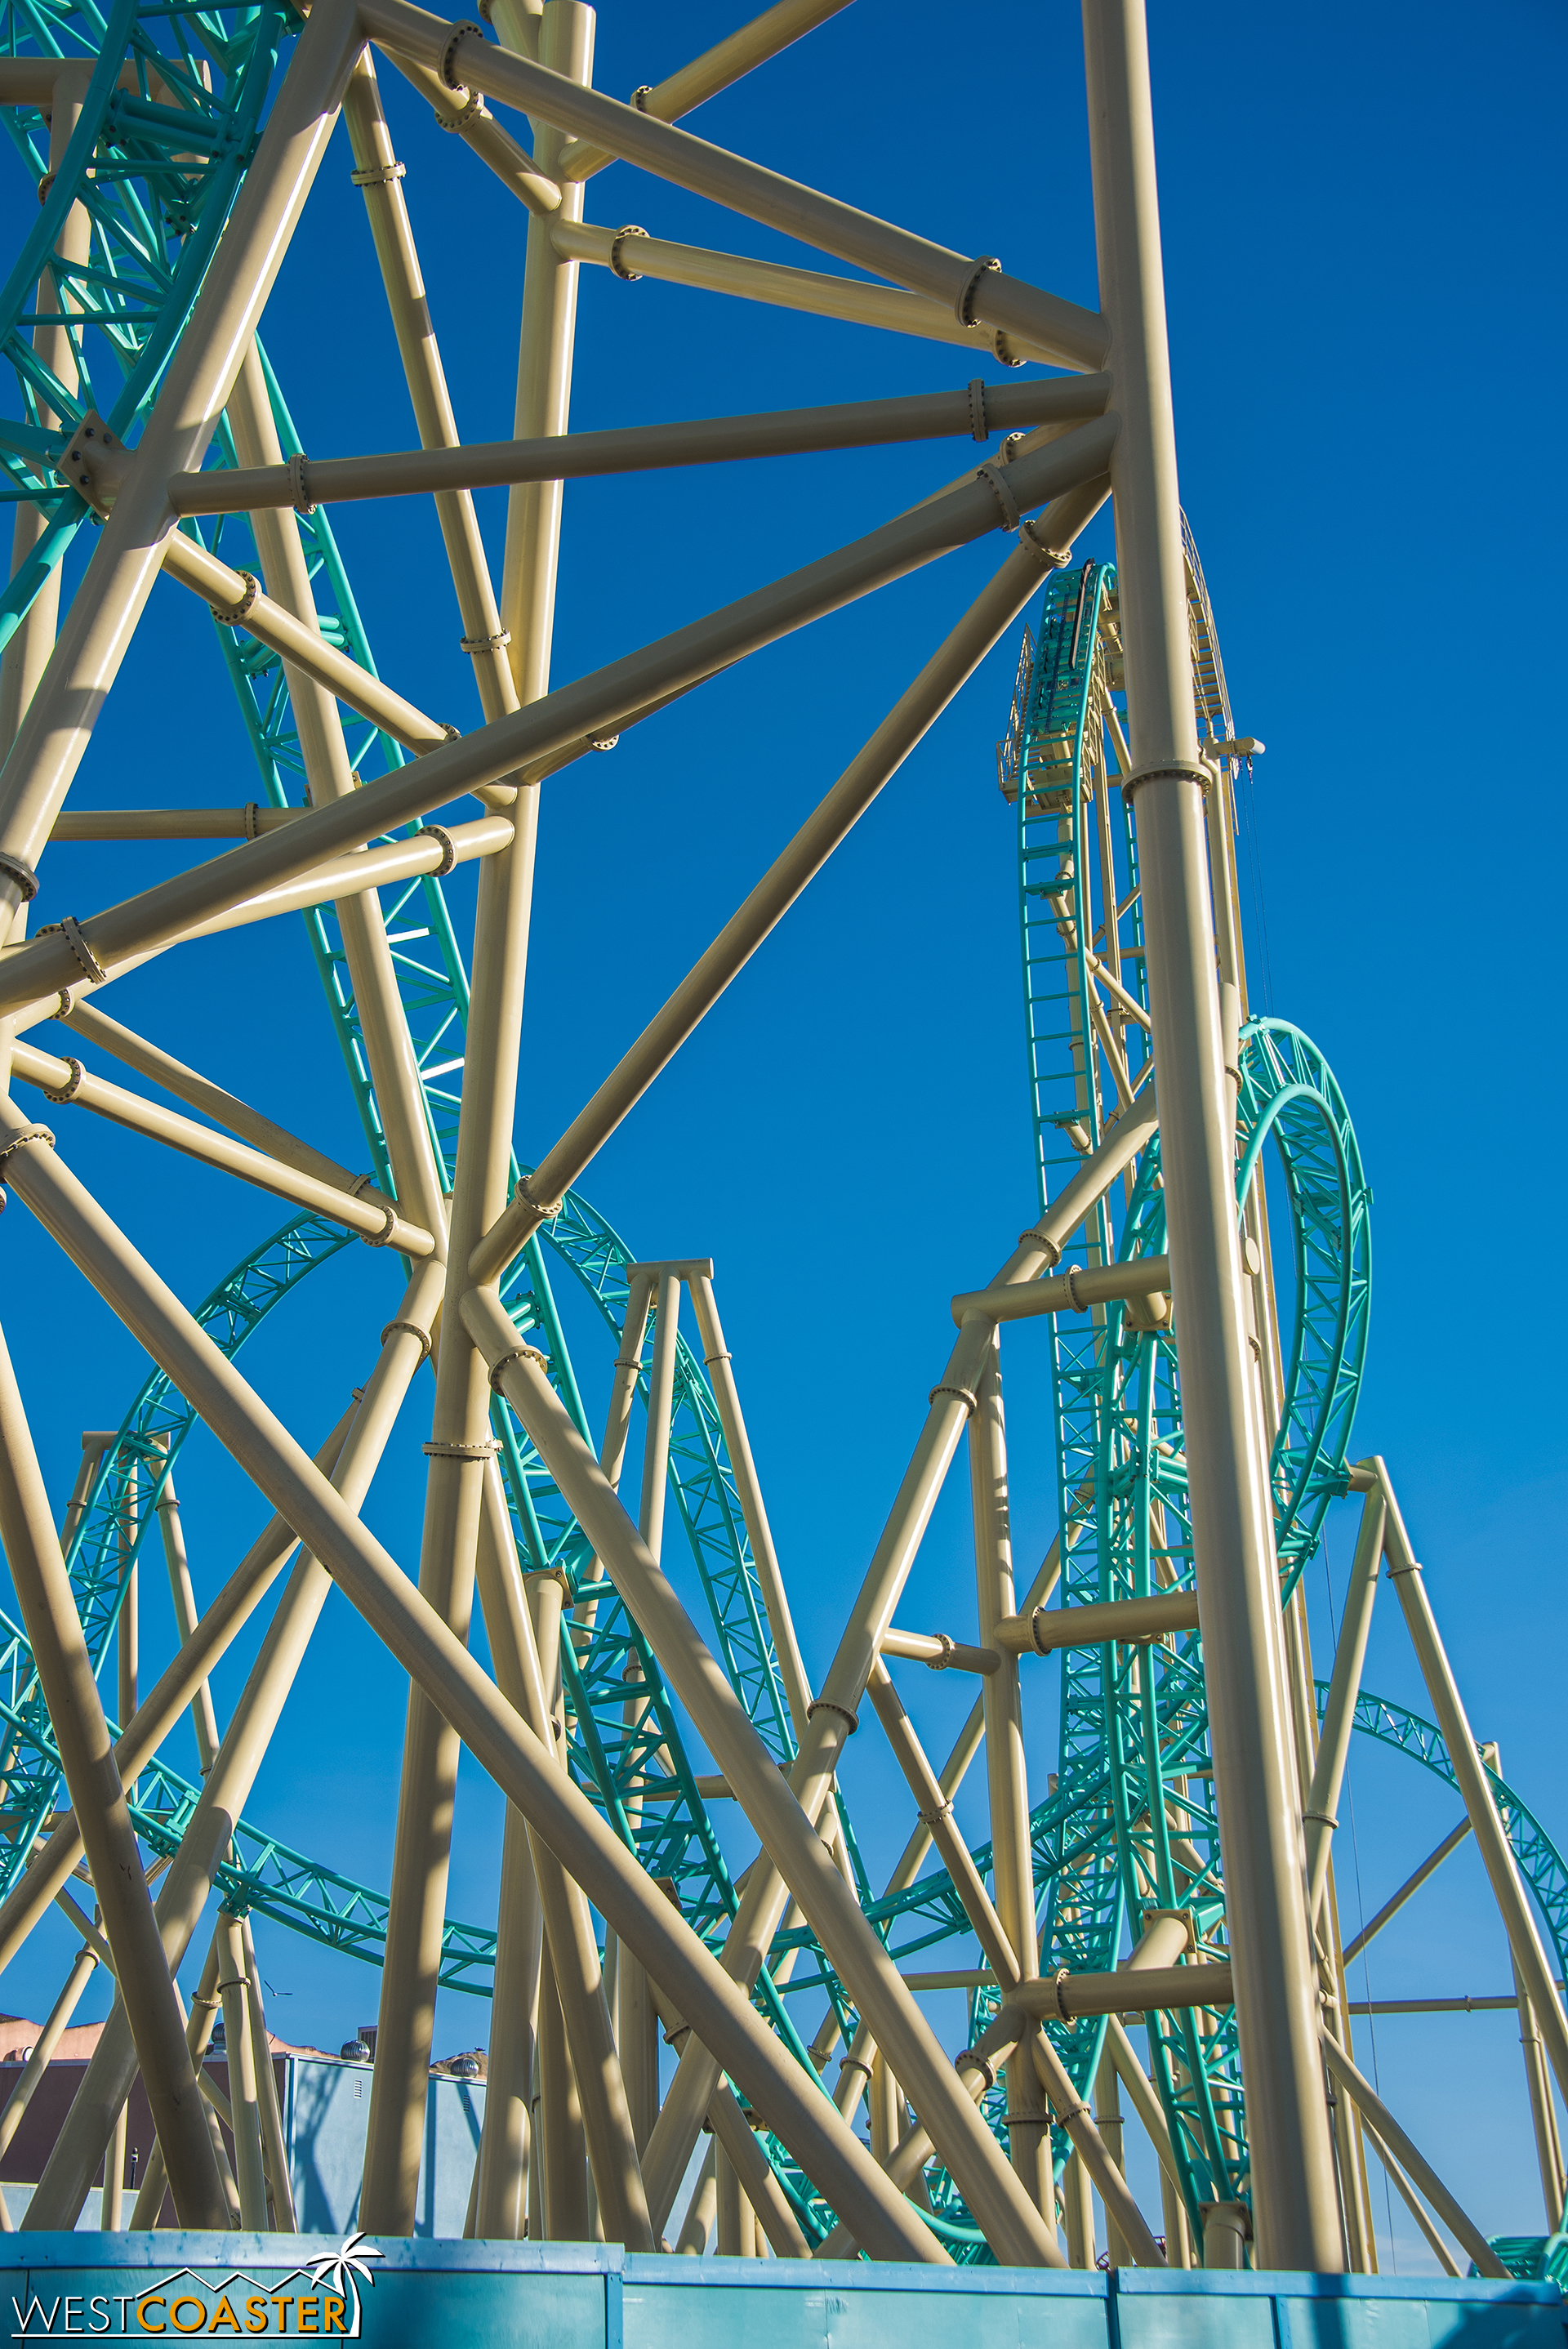 There are a LOT of supports in this ride.  It's defintely been over-engineered to meet California's strict seismic standards.